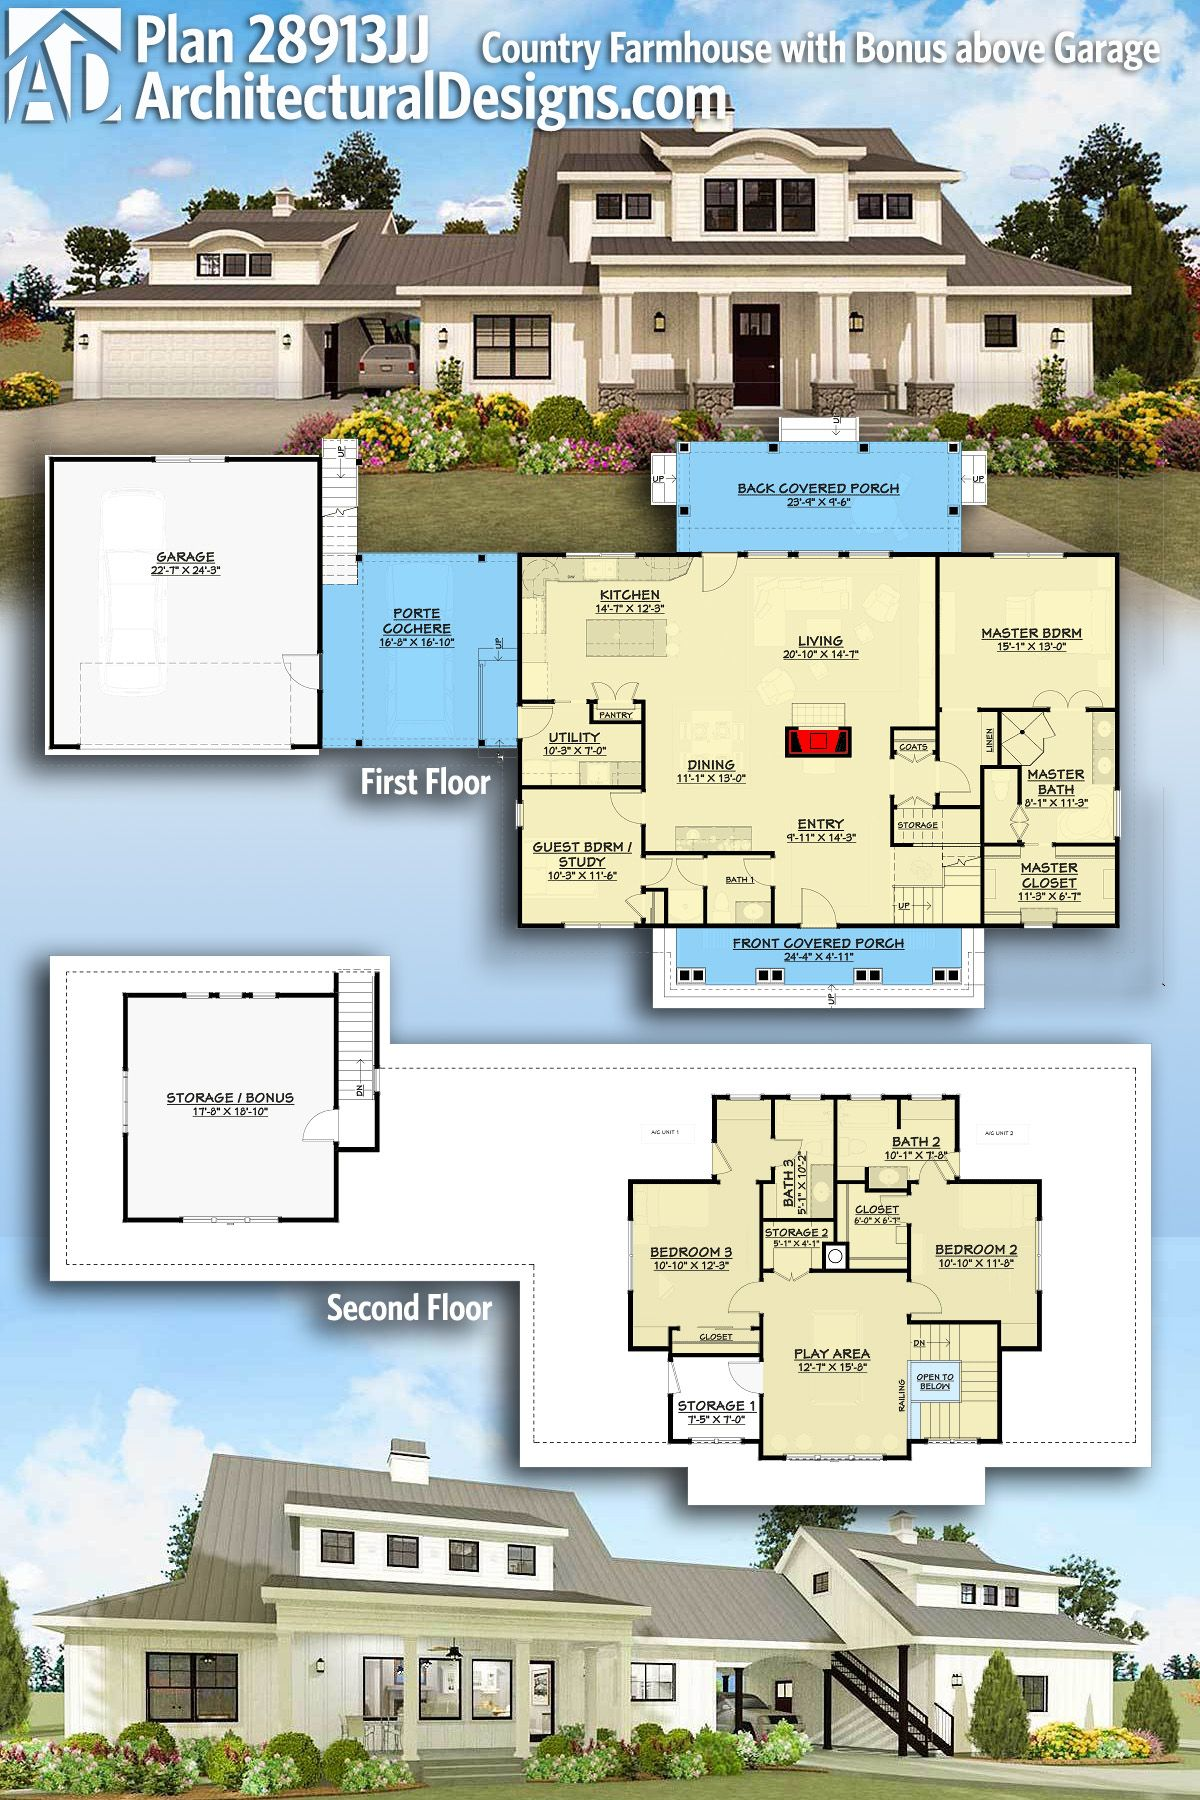 Architectural Designs House Plan 28913JJ gives you